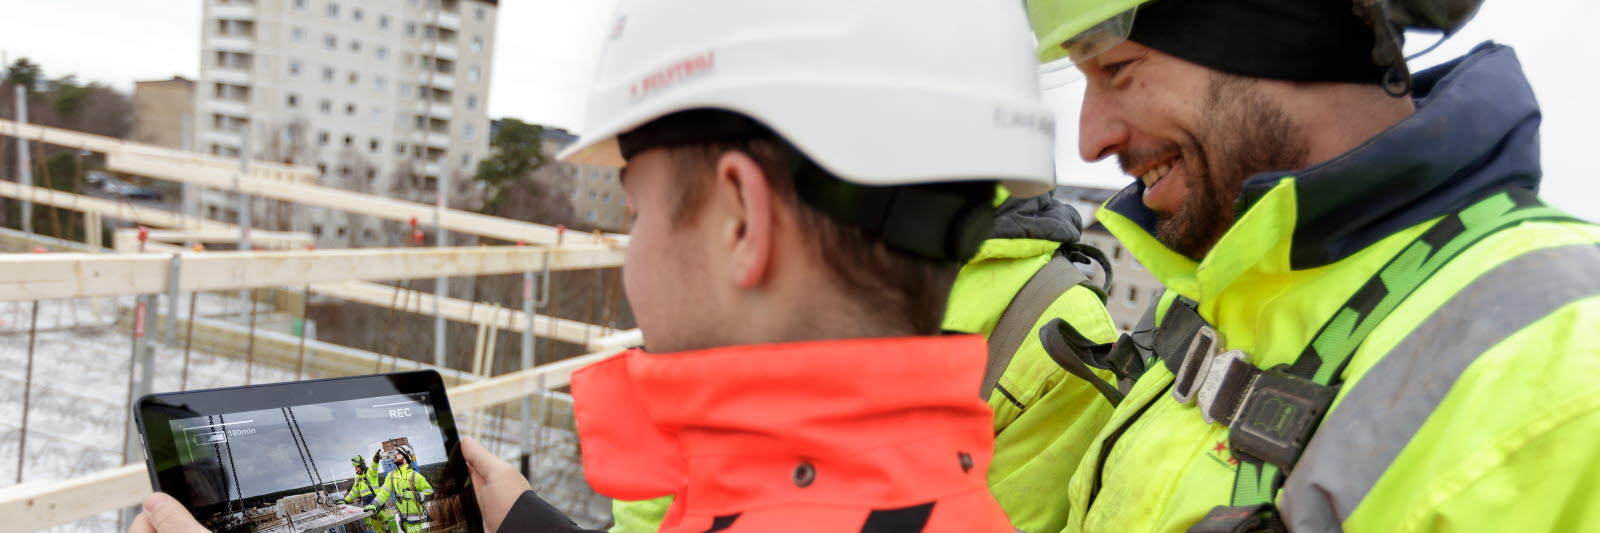 Person using eye tracking for safety assessment on a construction site